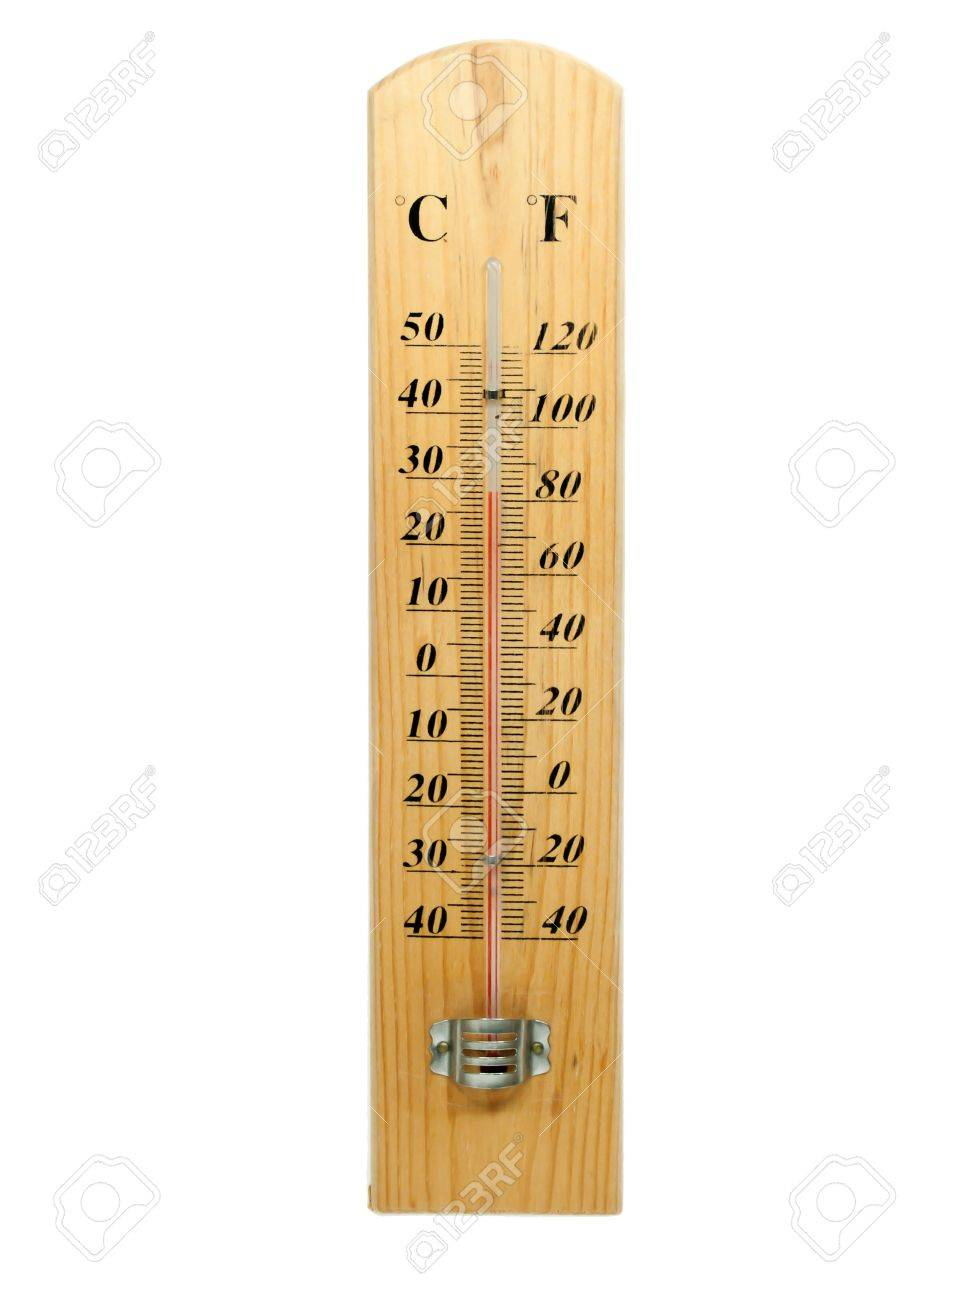 celsius and fahrenheit thermometer isolated stock photo picture and